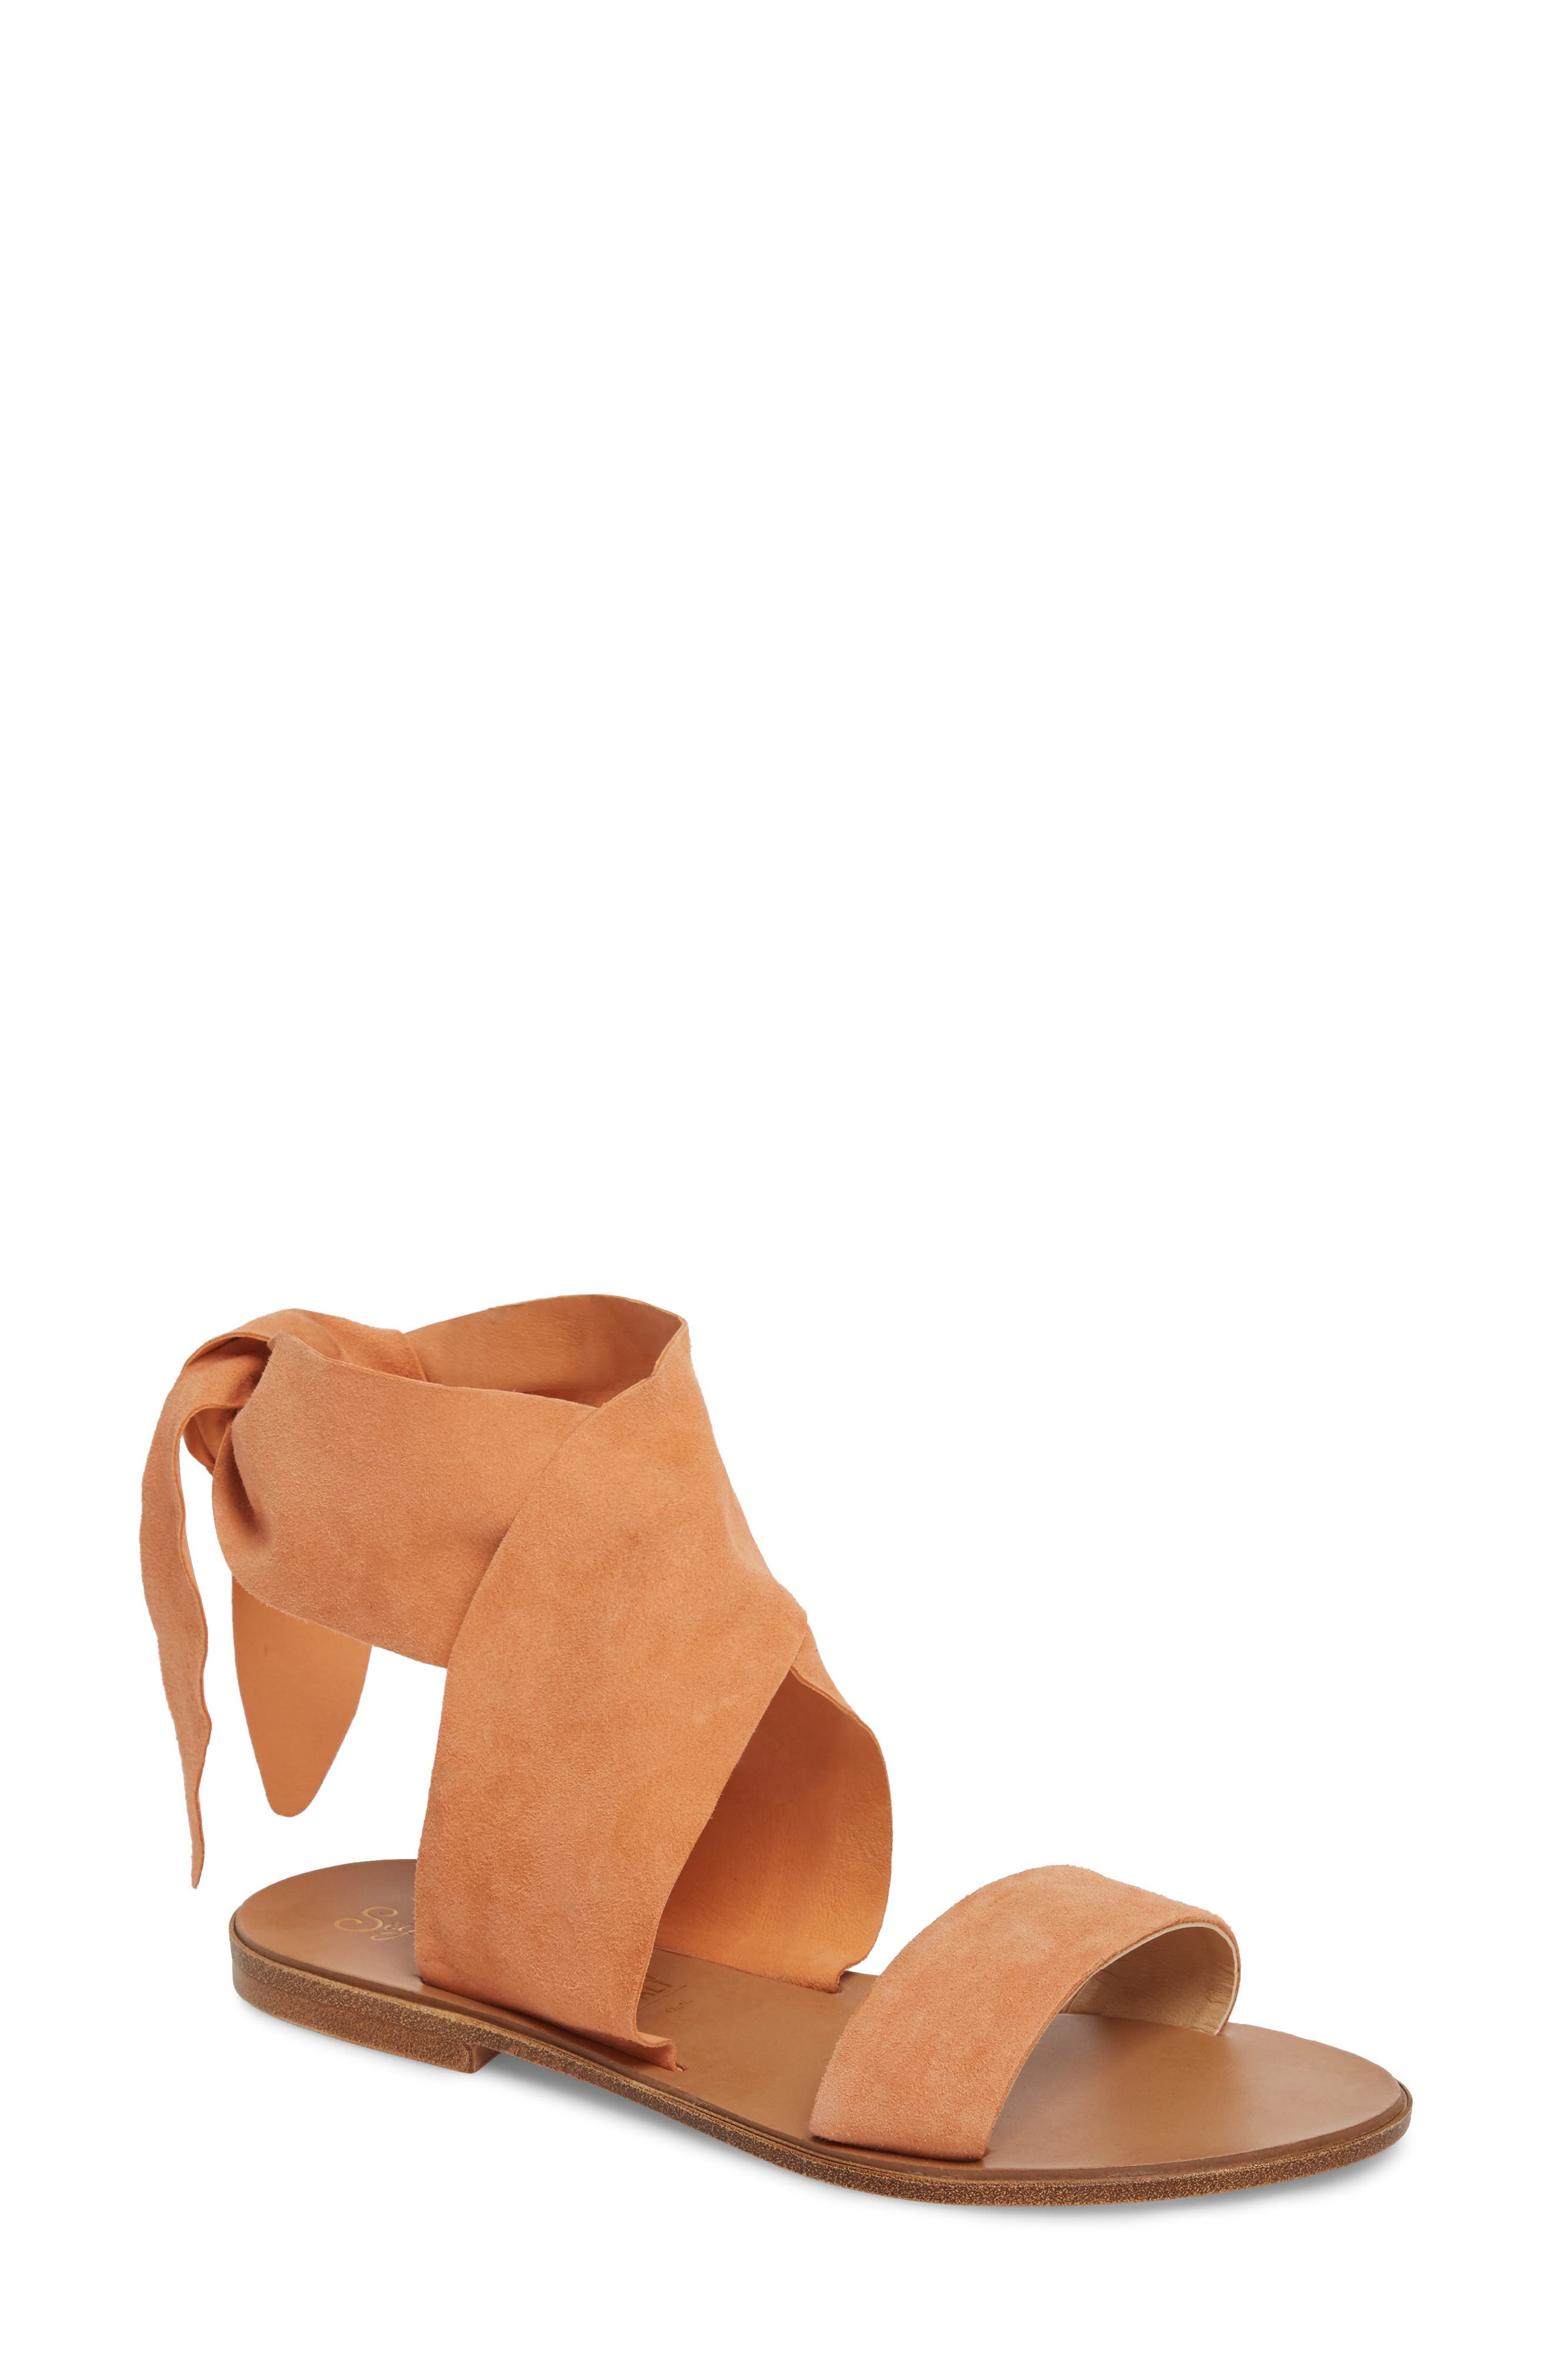 Cruisin Ankle Wrap Sandal,                         Main,                         color, PEACH SUEDE